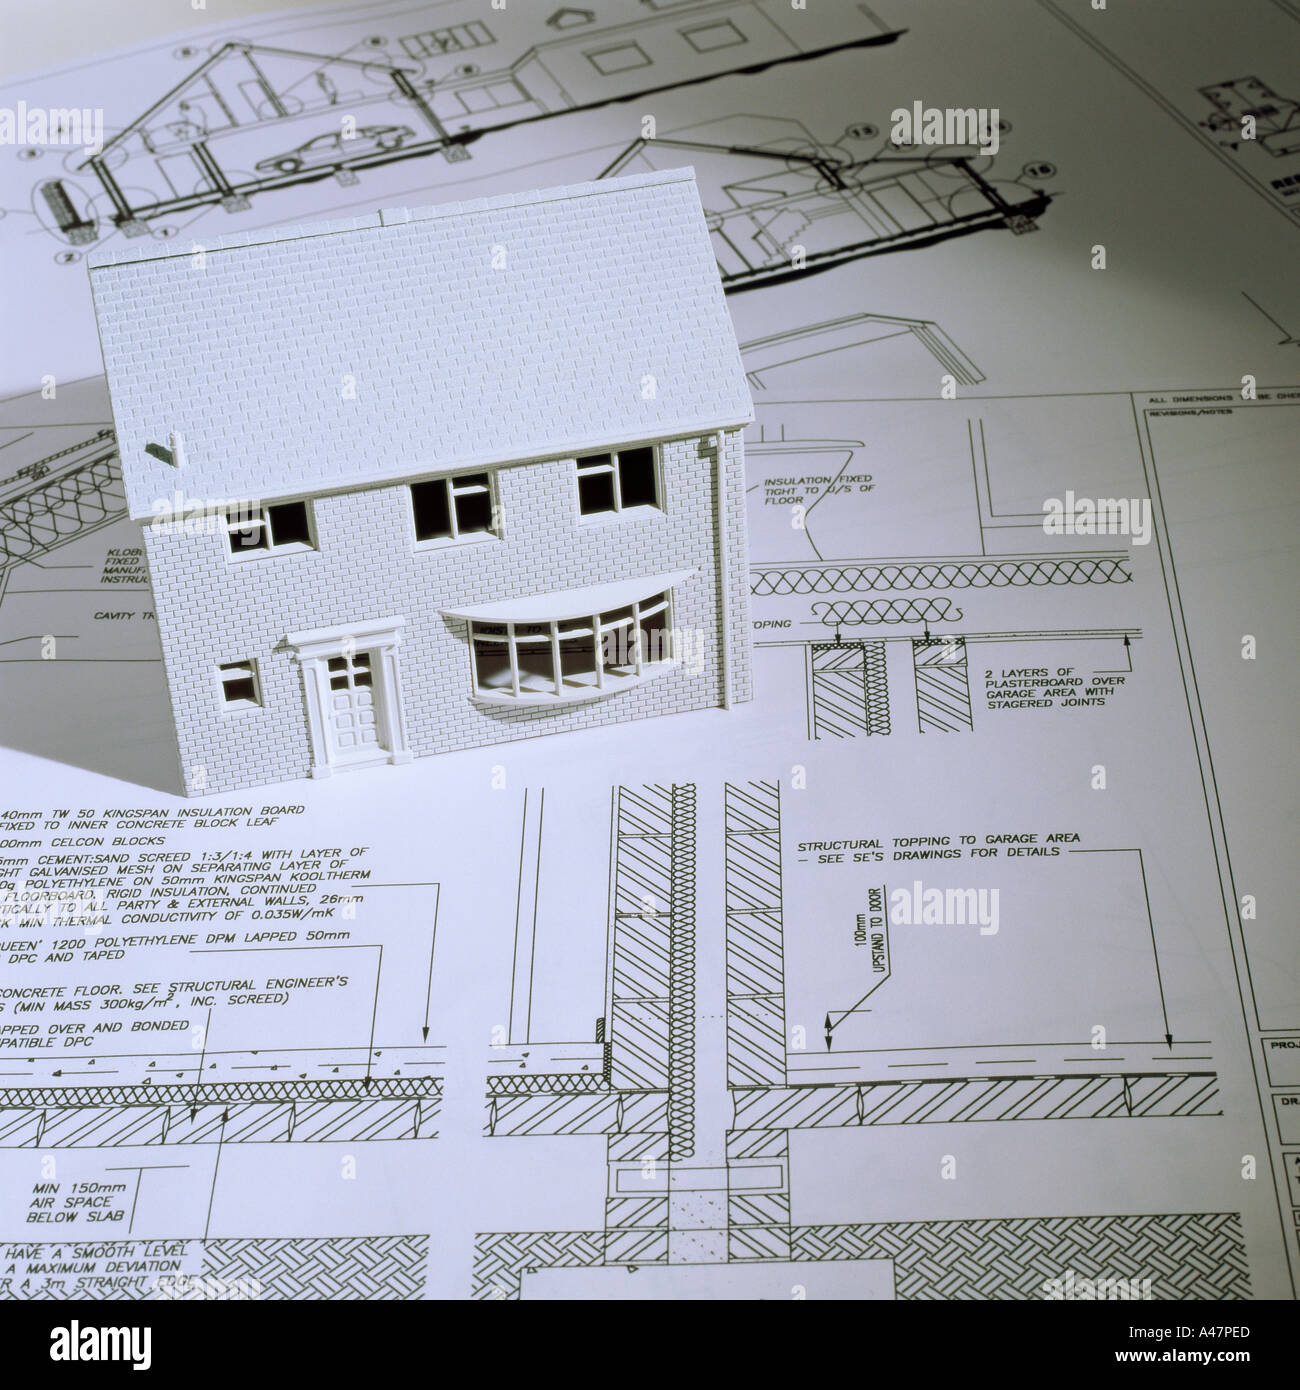 Model house and architectural blueprints - Stock Image